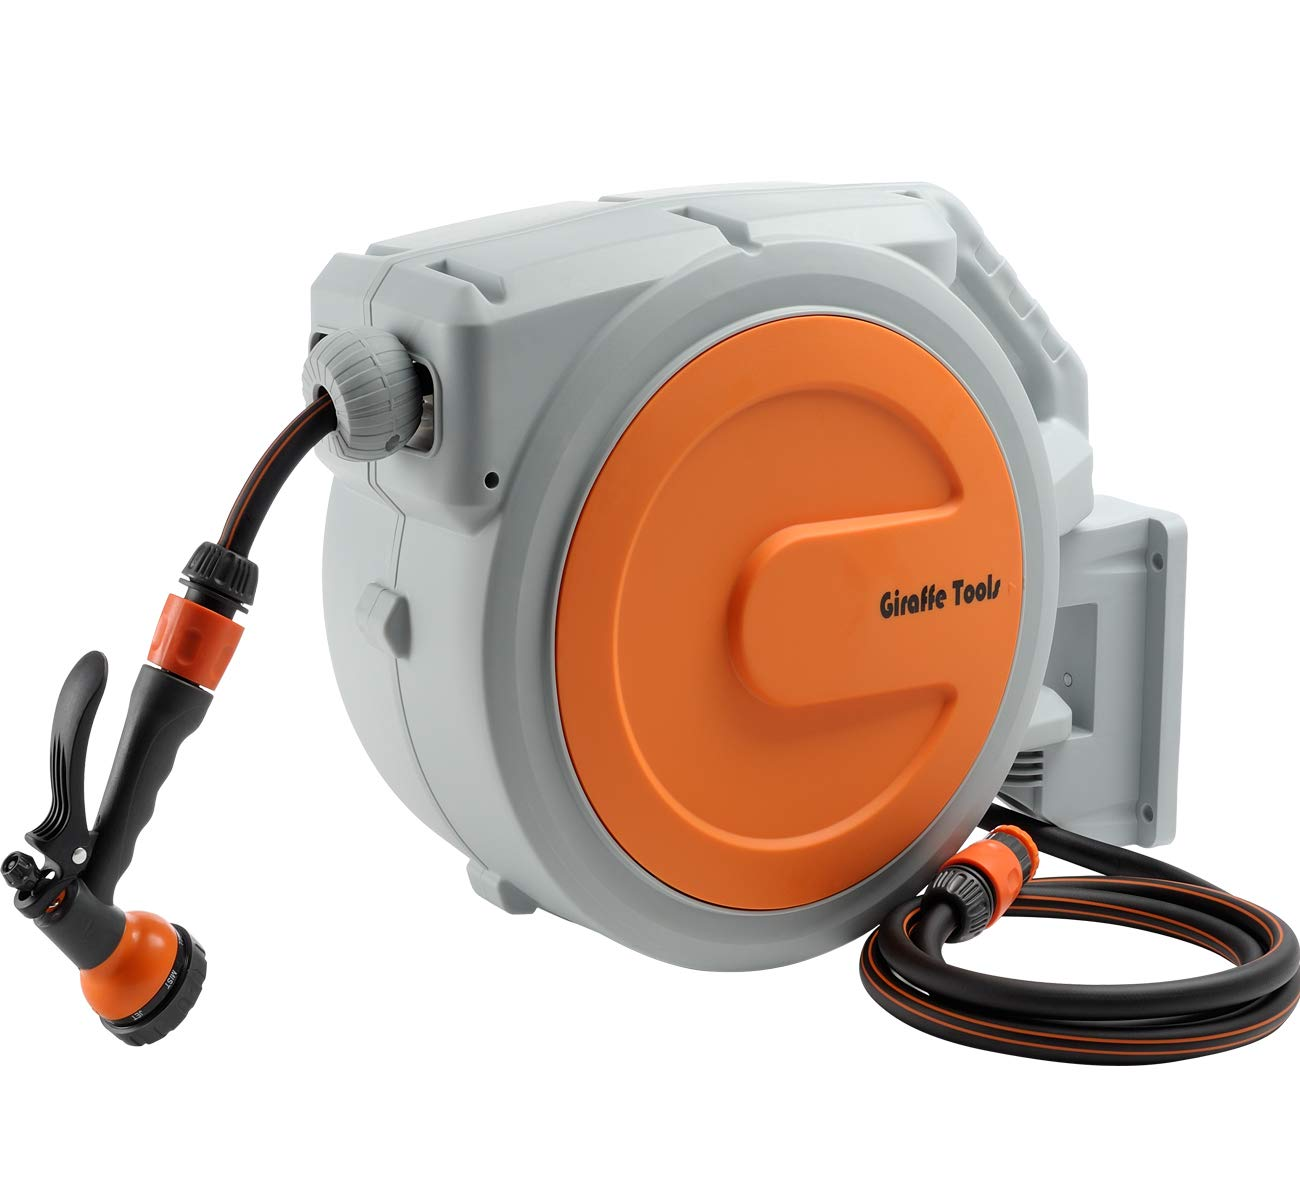 Garden-Hose-Reel 20m+2m Wall-Mounted Pico Garden Reel with 7 Pattern Spray Nozzle, Wall Bracket and Any Length Lock Auto Reel by Giraffe Giraffe Tools